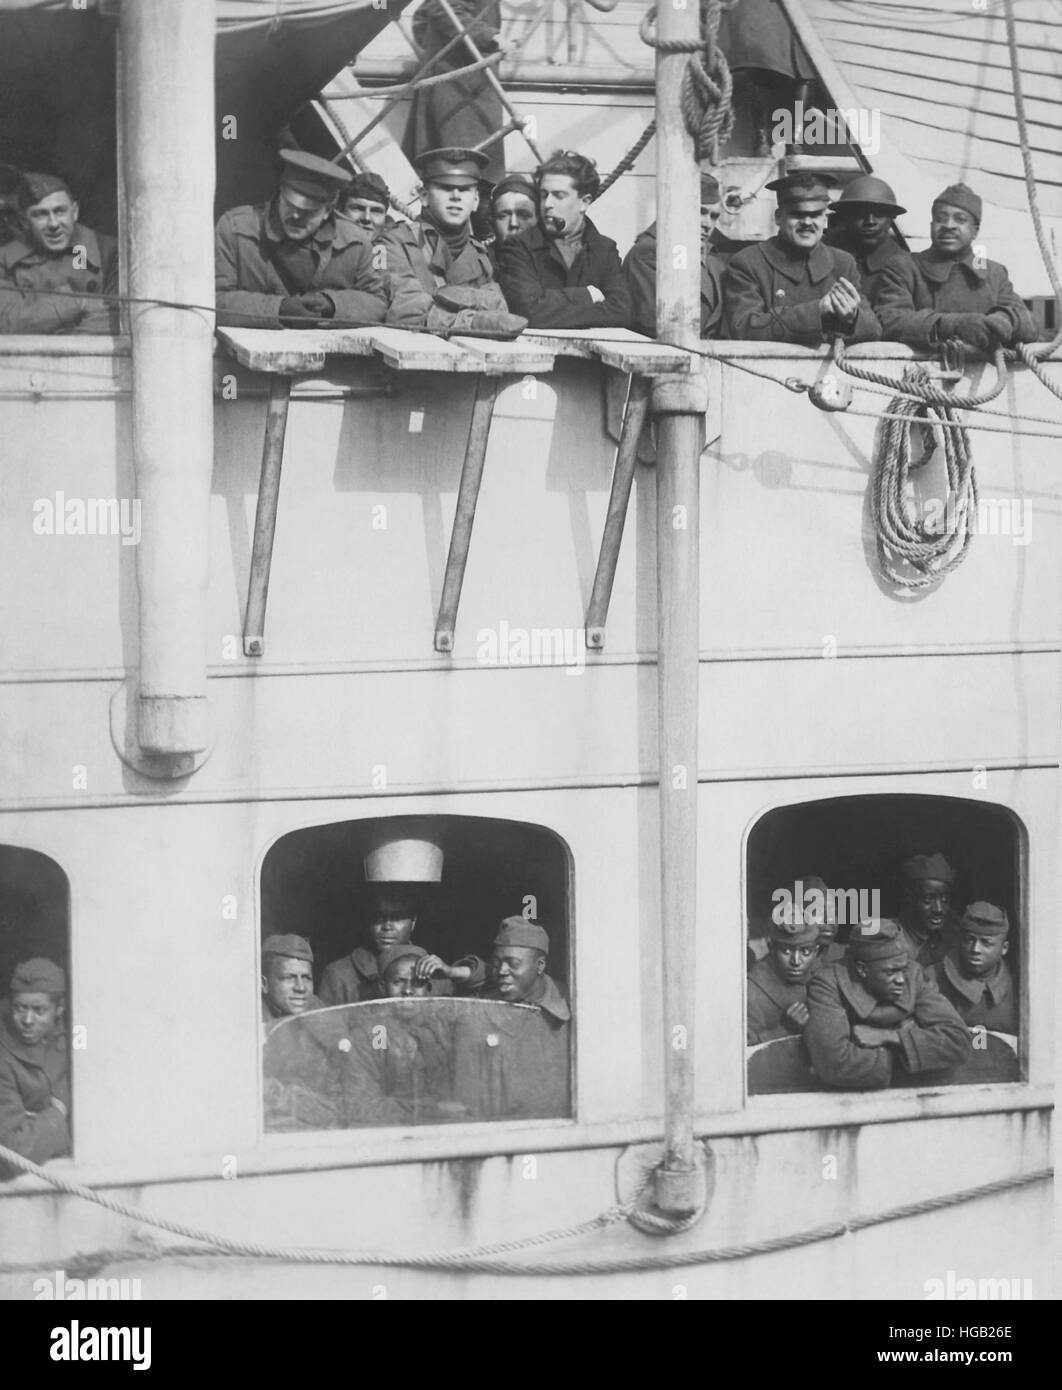 French liner La France arrives with 15th Infantry, Negro fighters. - Stock Image